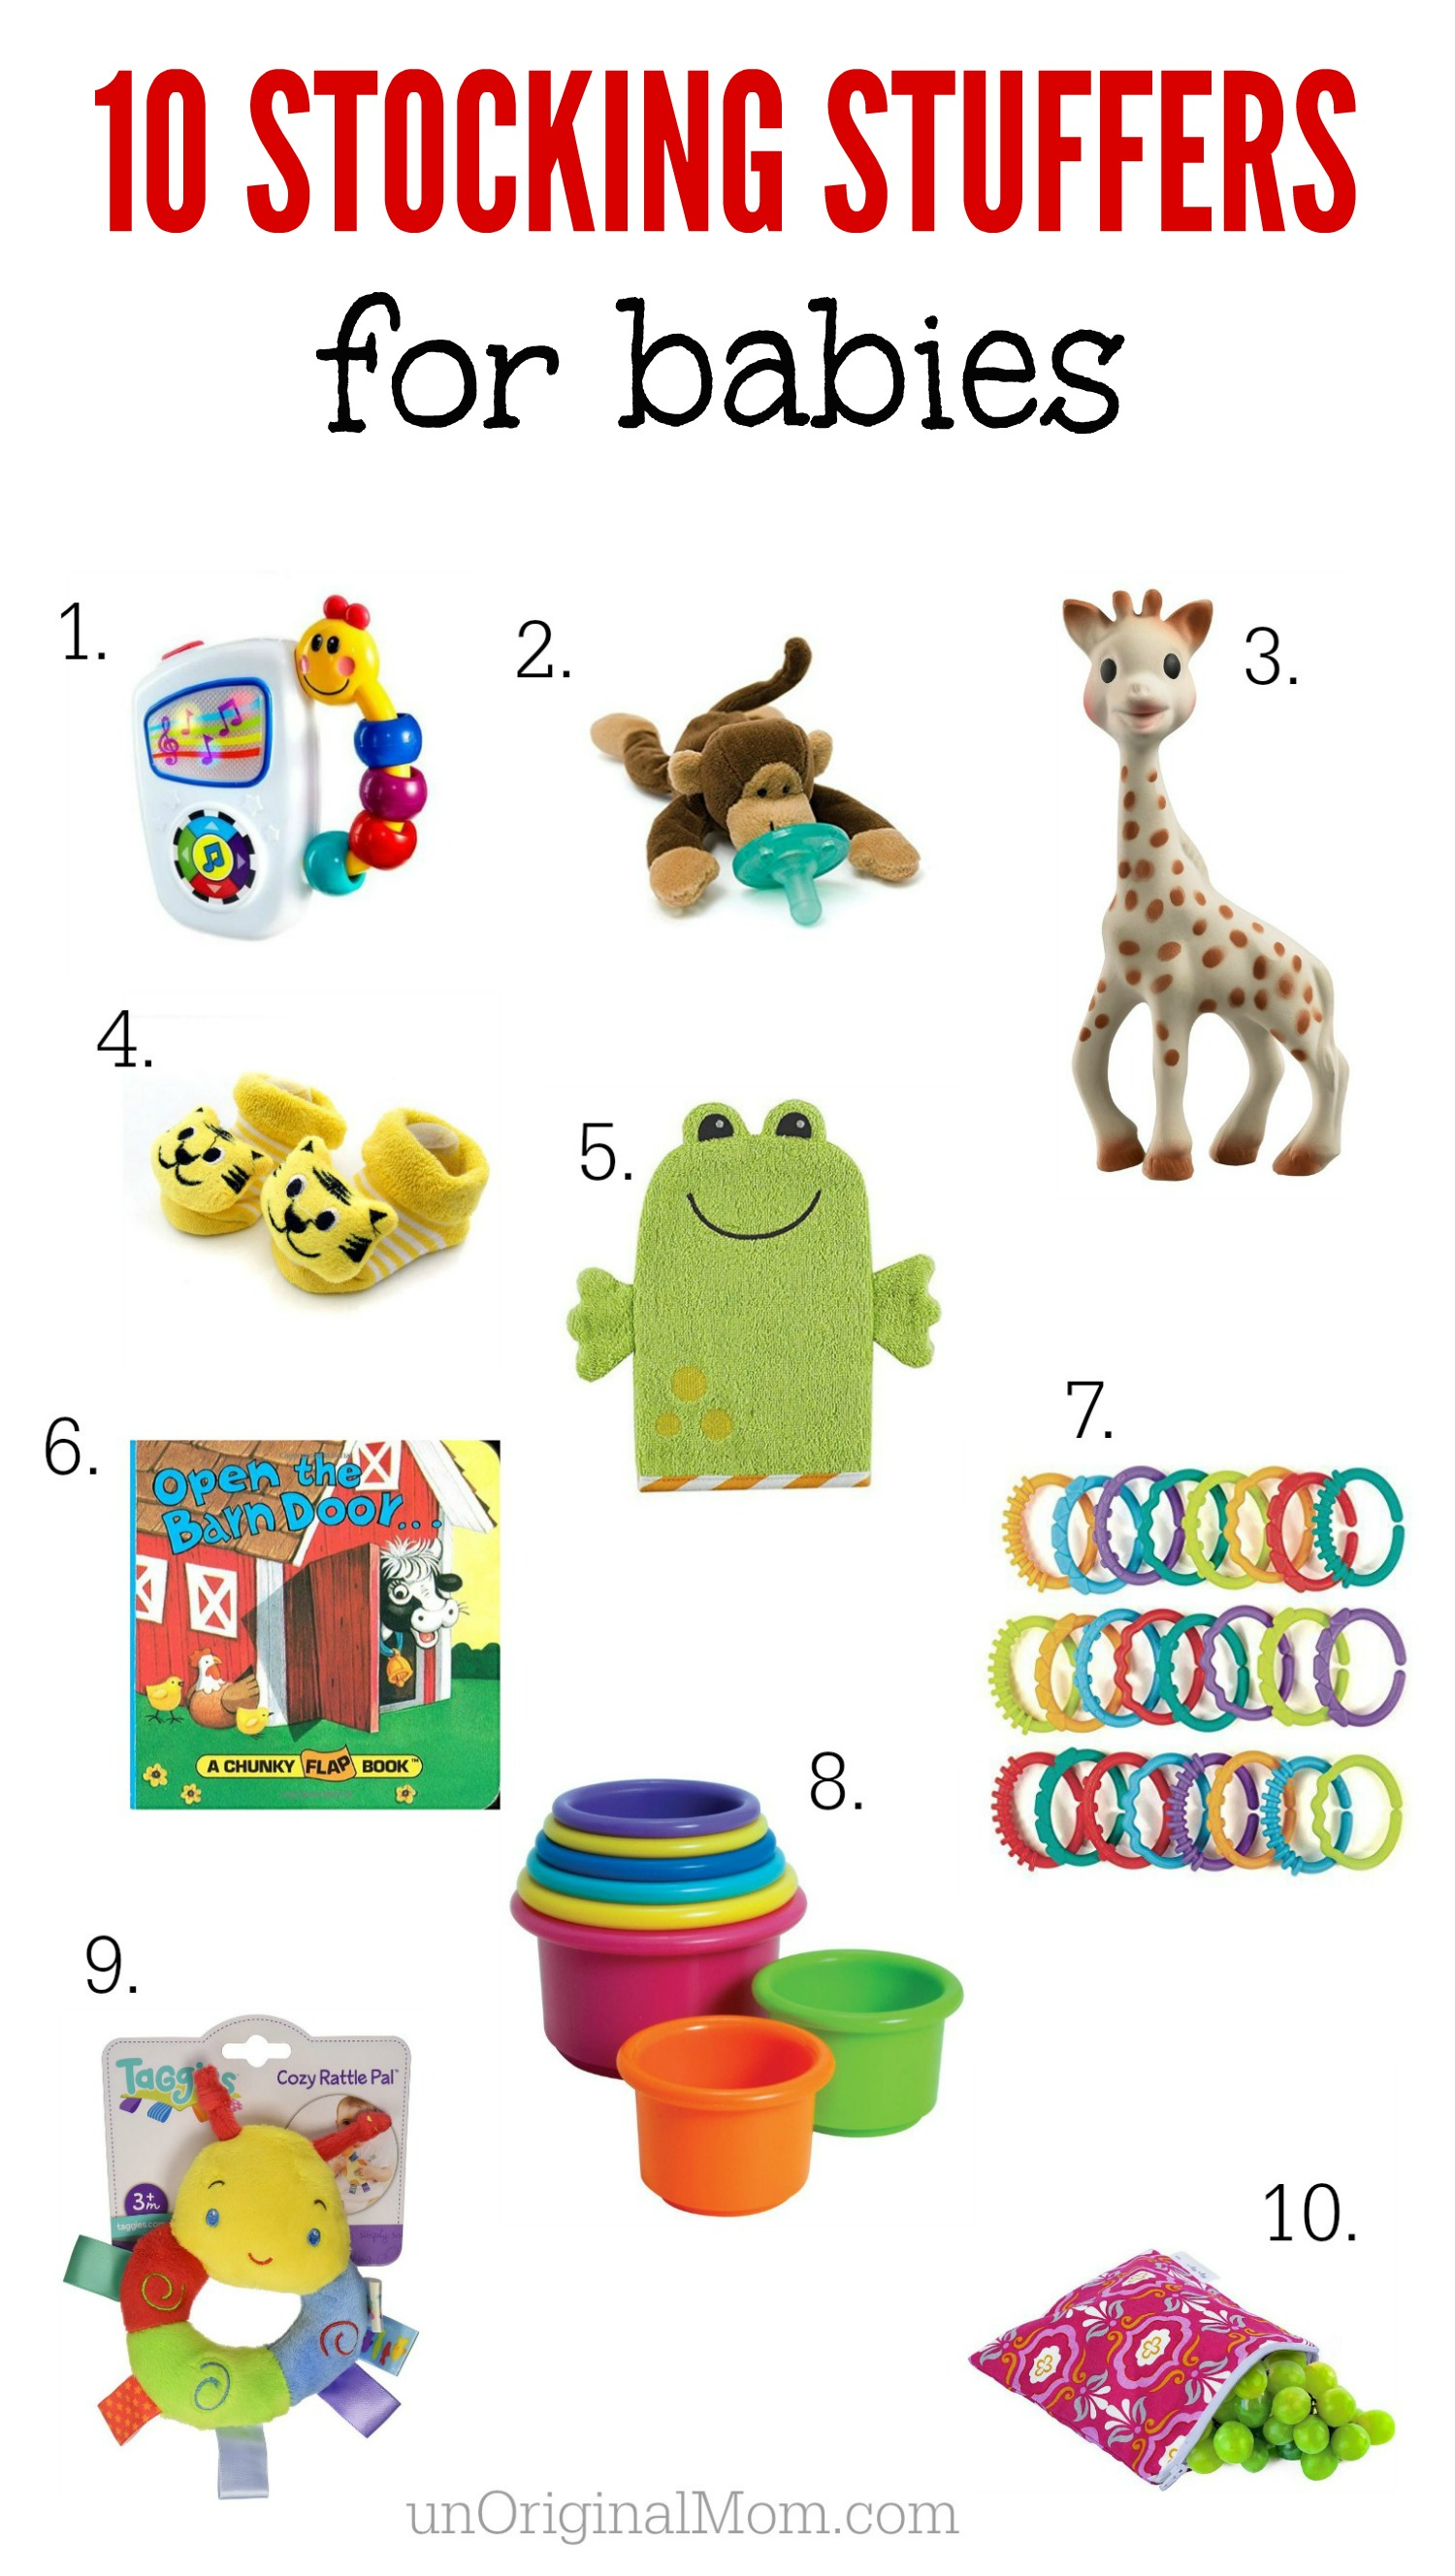 a great list of stocking stuffer ideas for babiesnon electronic